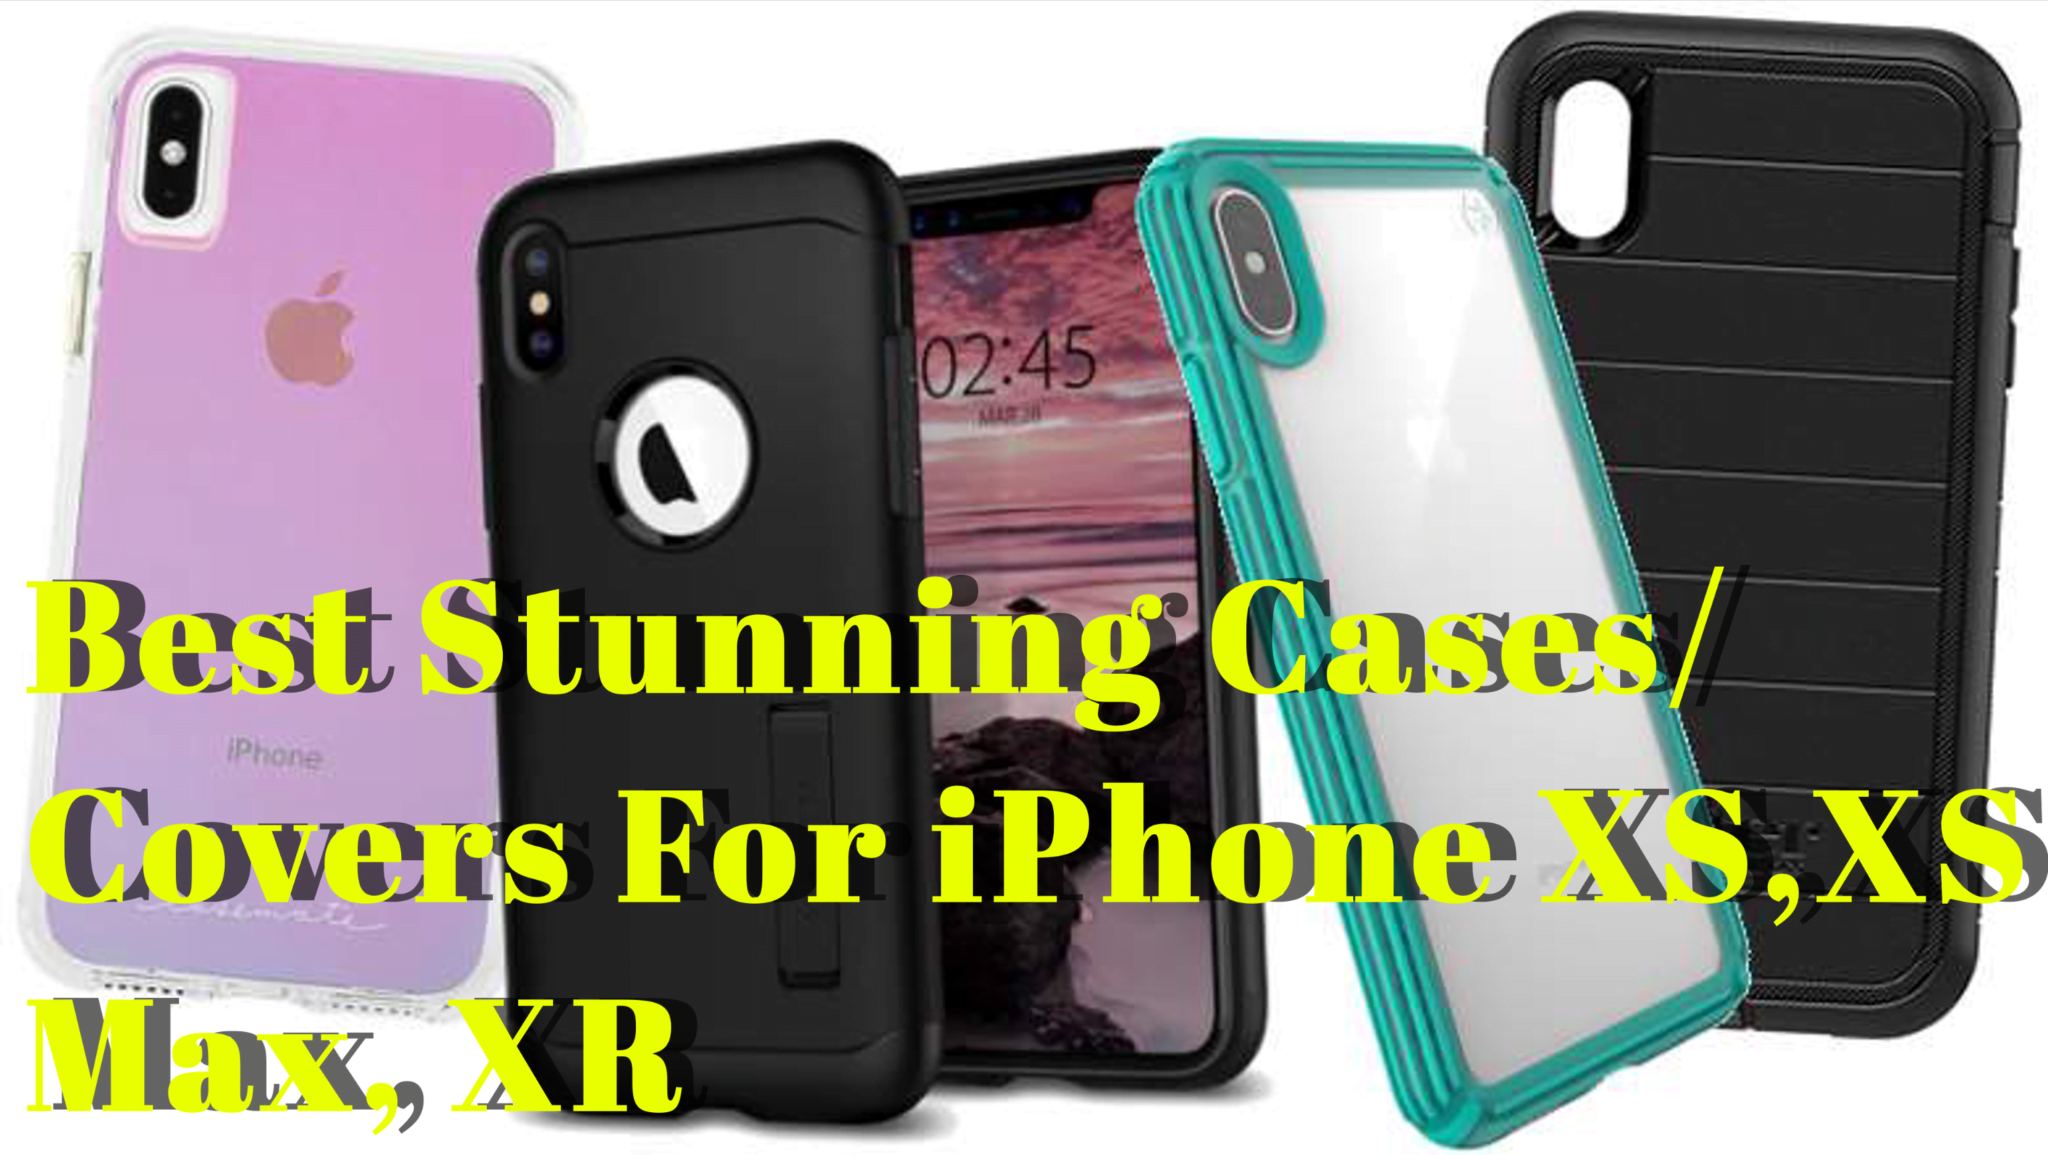 Best Stunning cases/cover To Buy for Brand New iPhone XS, XS Max, XR